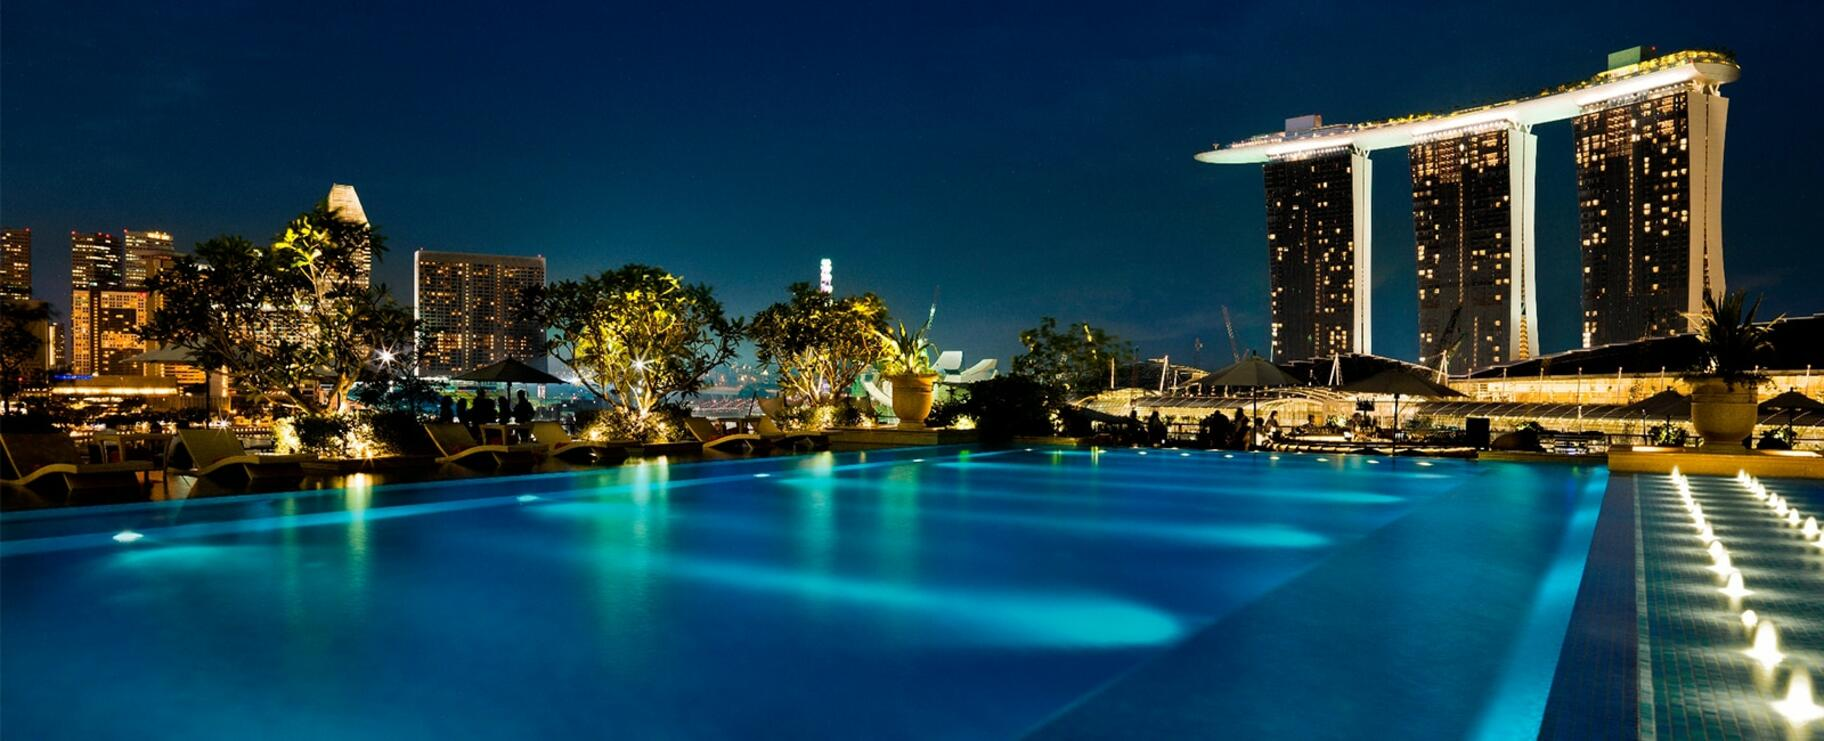 The pool and the city view at night